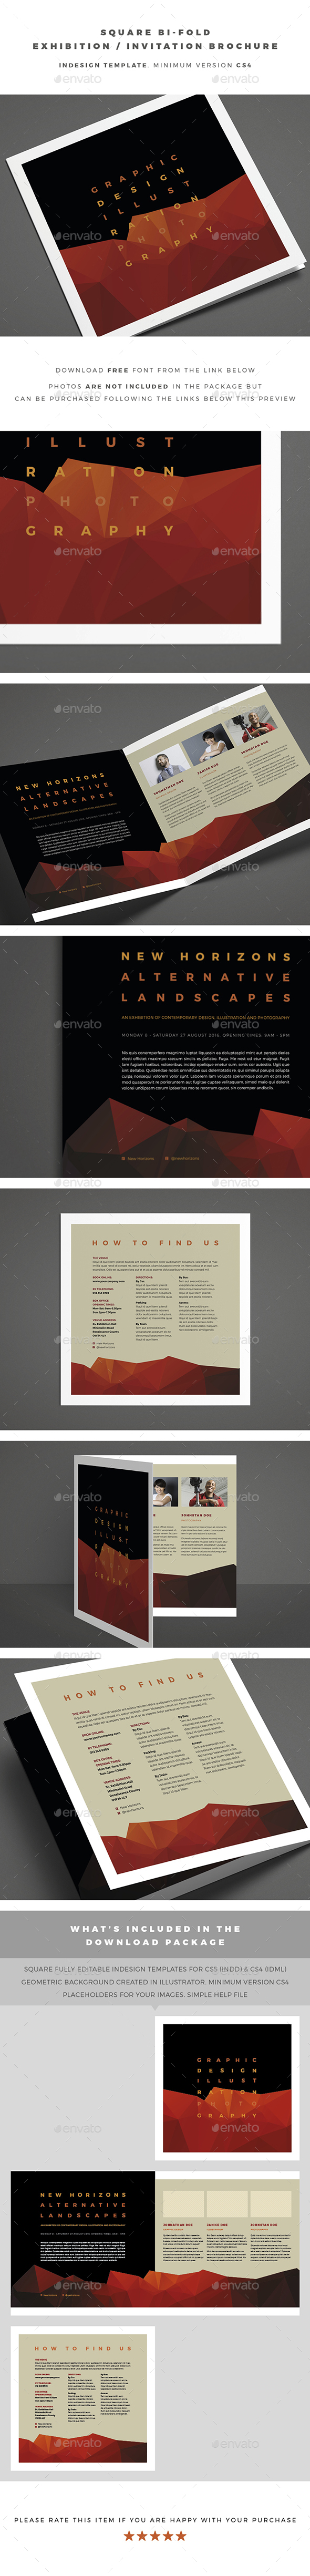 Square Bi-Fold Exhibition / Invitation Brochure - Brochures Print Templates